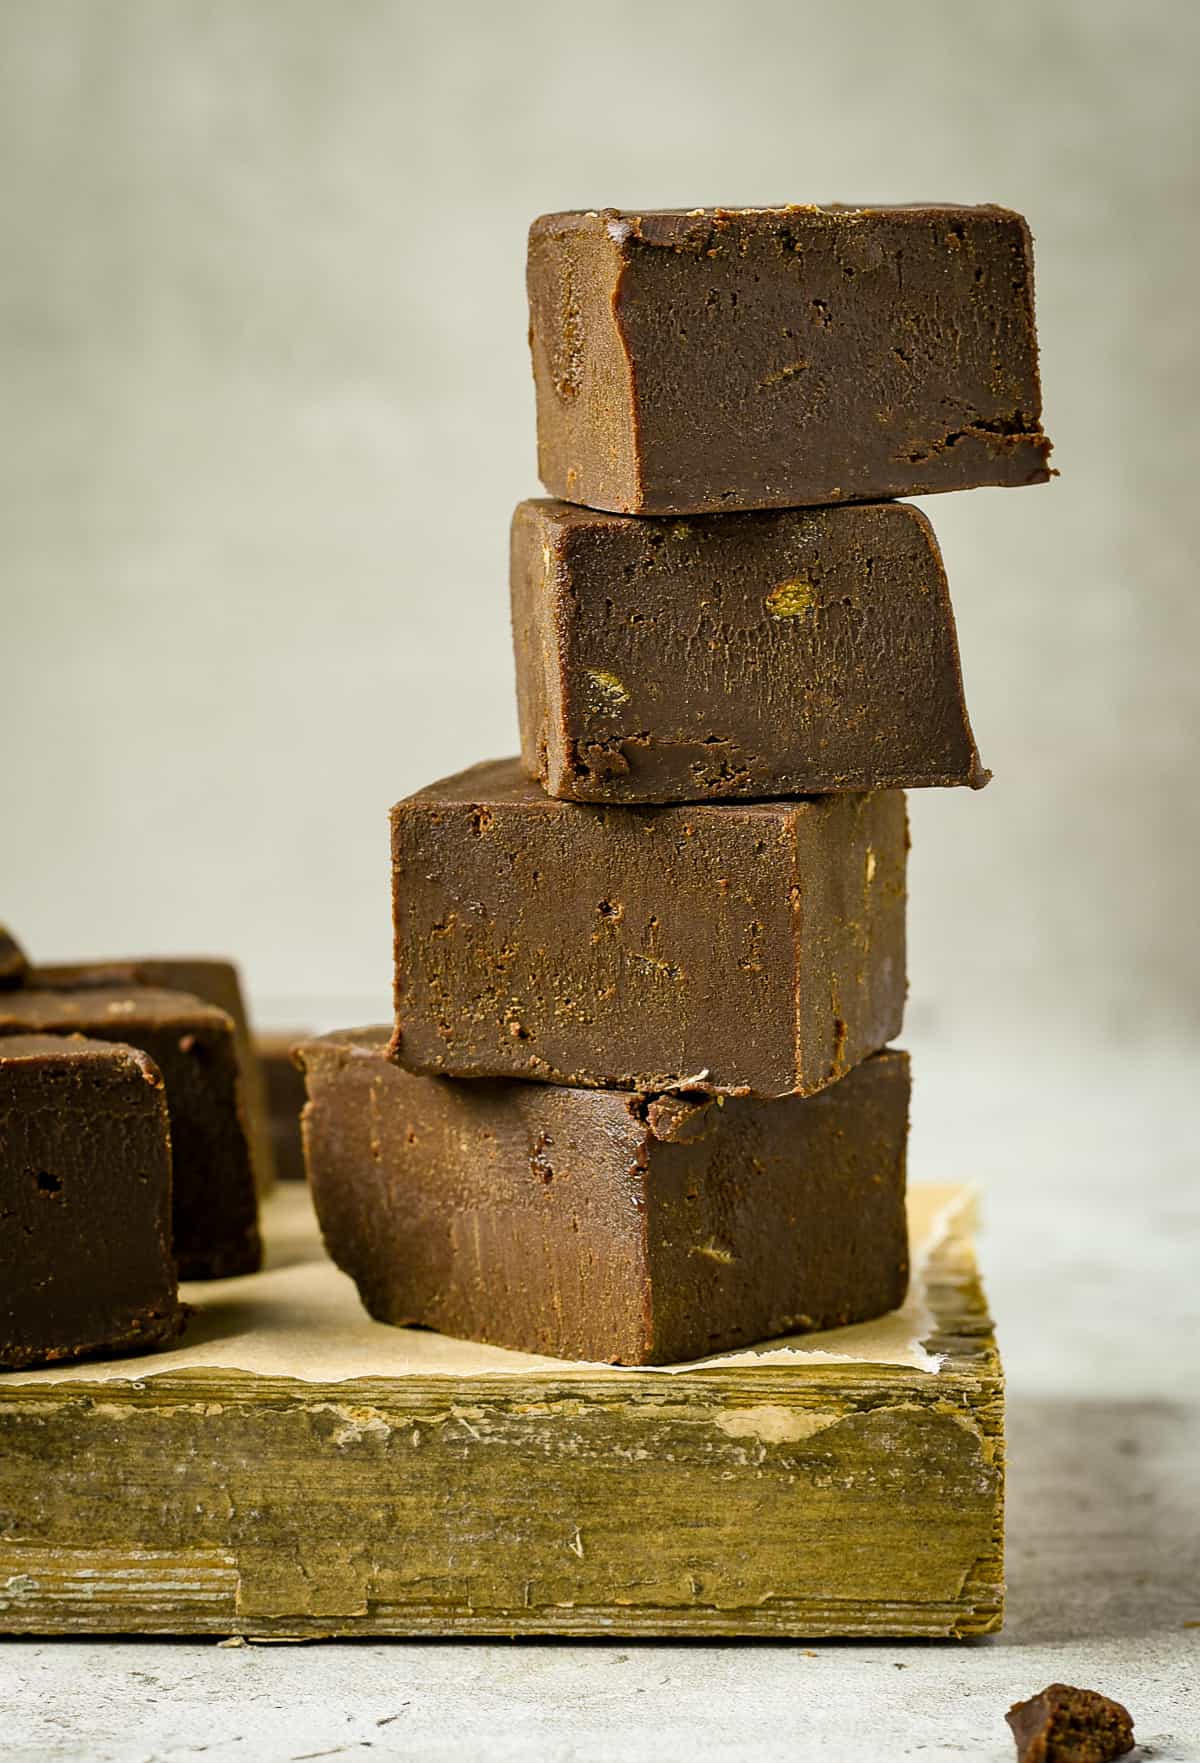 Four pieces of vegan fudge stacked.